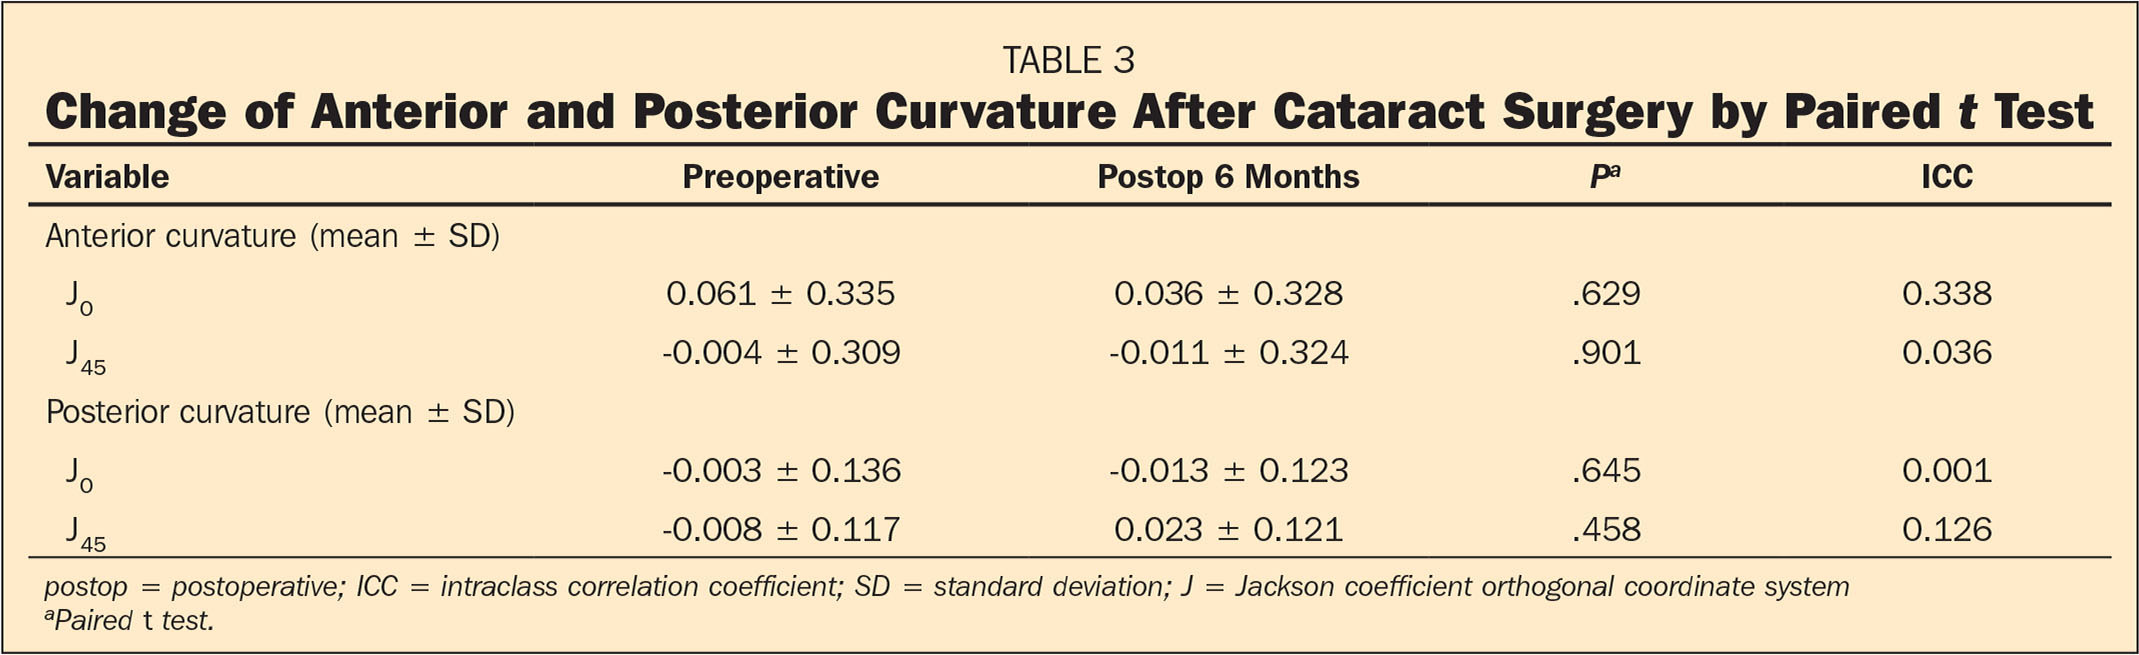 Change of Anterior and Posterior Curvature After Cataract Surgery by Paired t Test